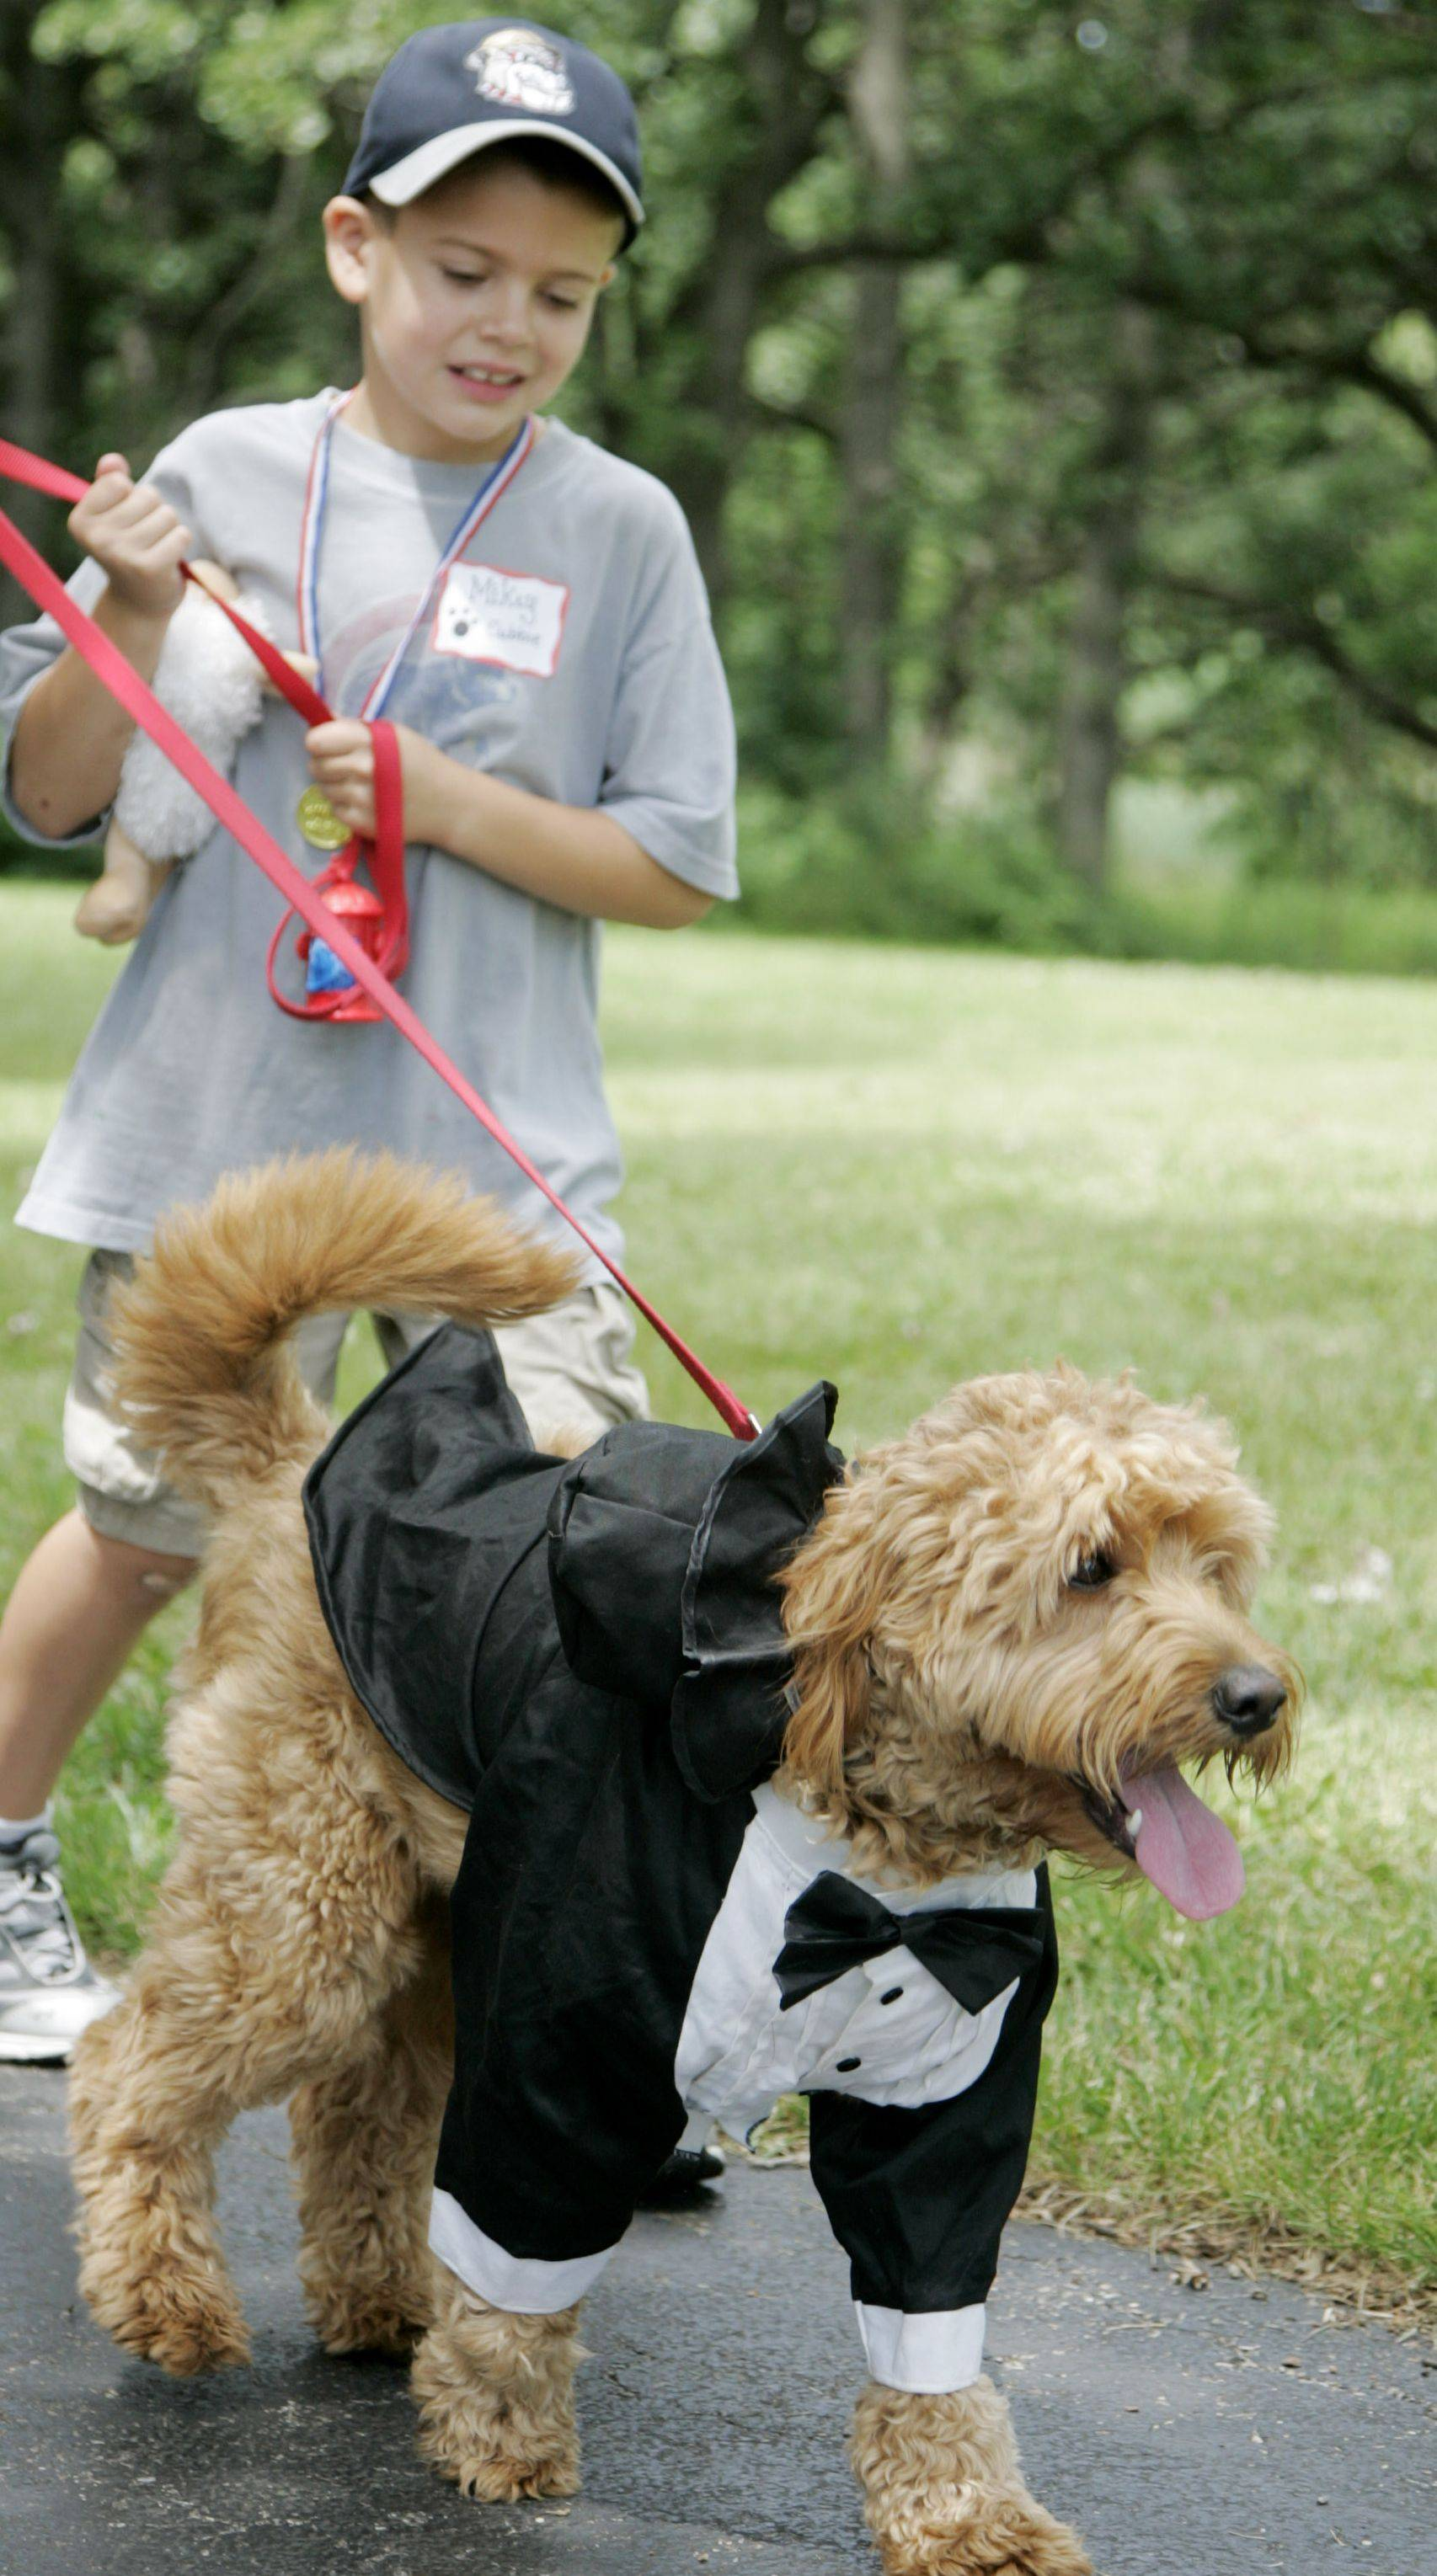 Mikey Fornelli of Cary walks with his dog Cubbie, a golden doodle, who won Best Costume at a previous Cary Park District Kids Dog Show at Lions Park.